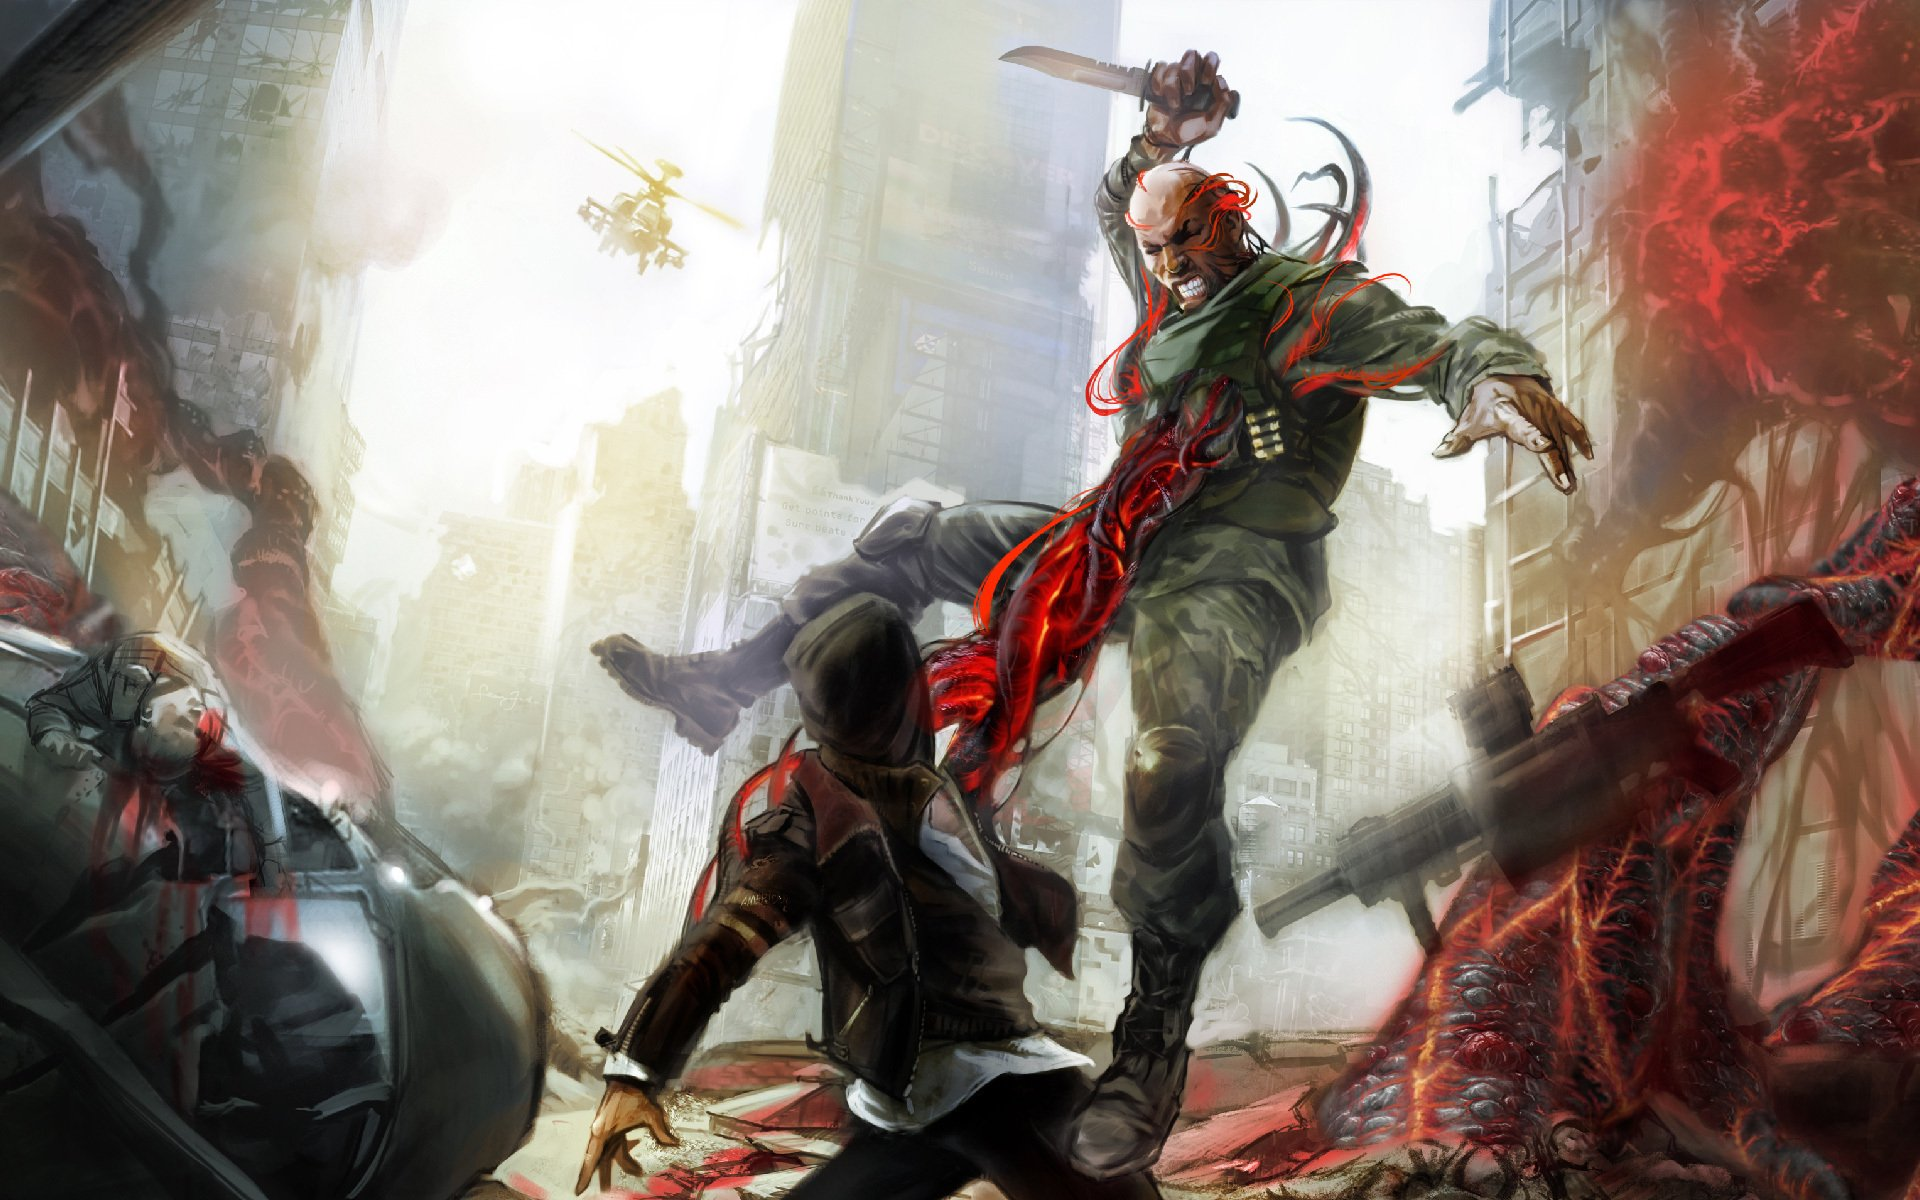 prototype 2 full hd wallpaper and background image | 1920x1200 | id